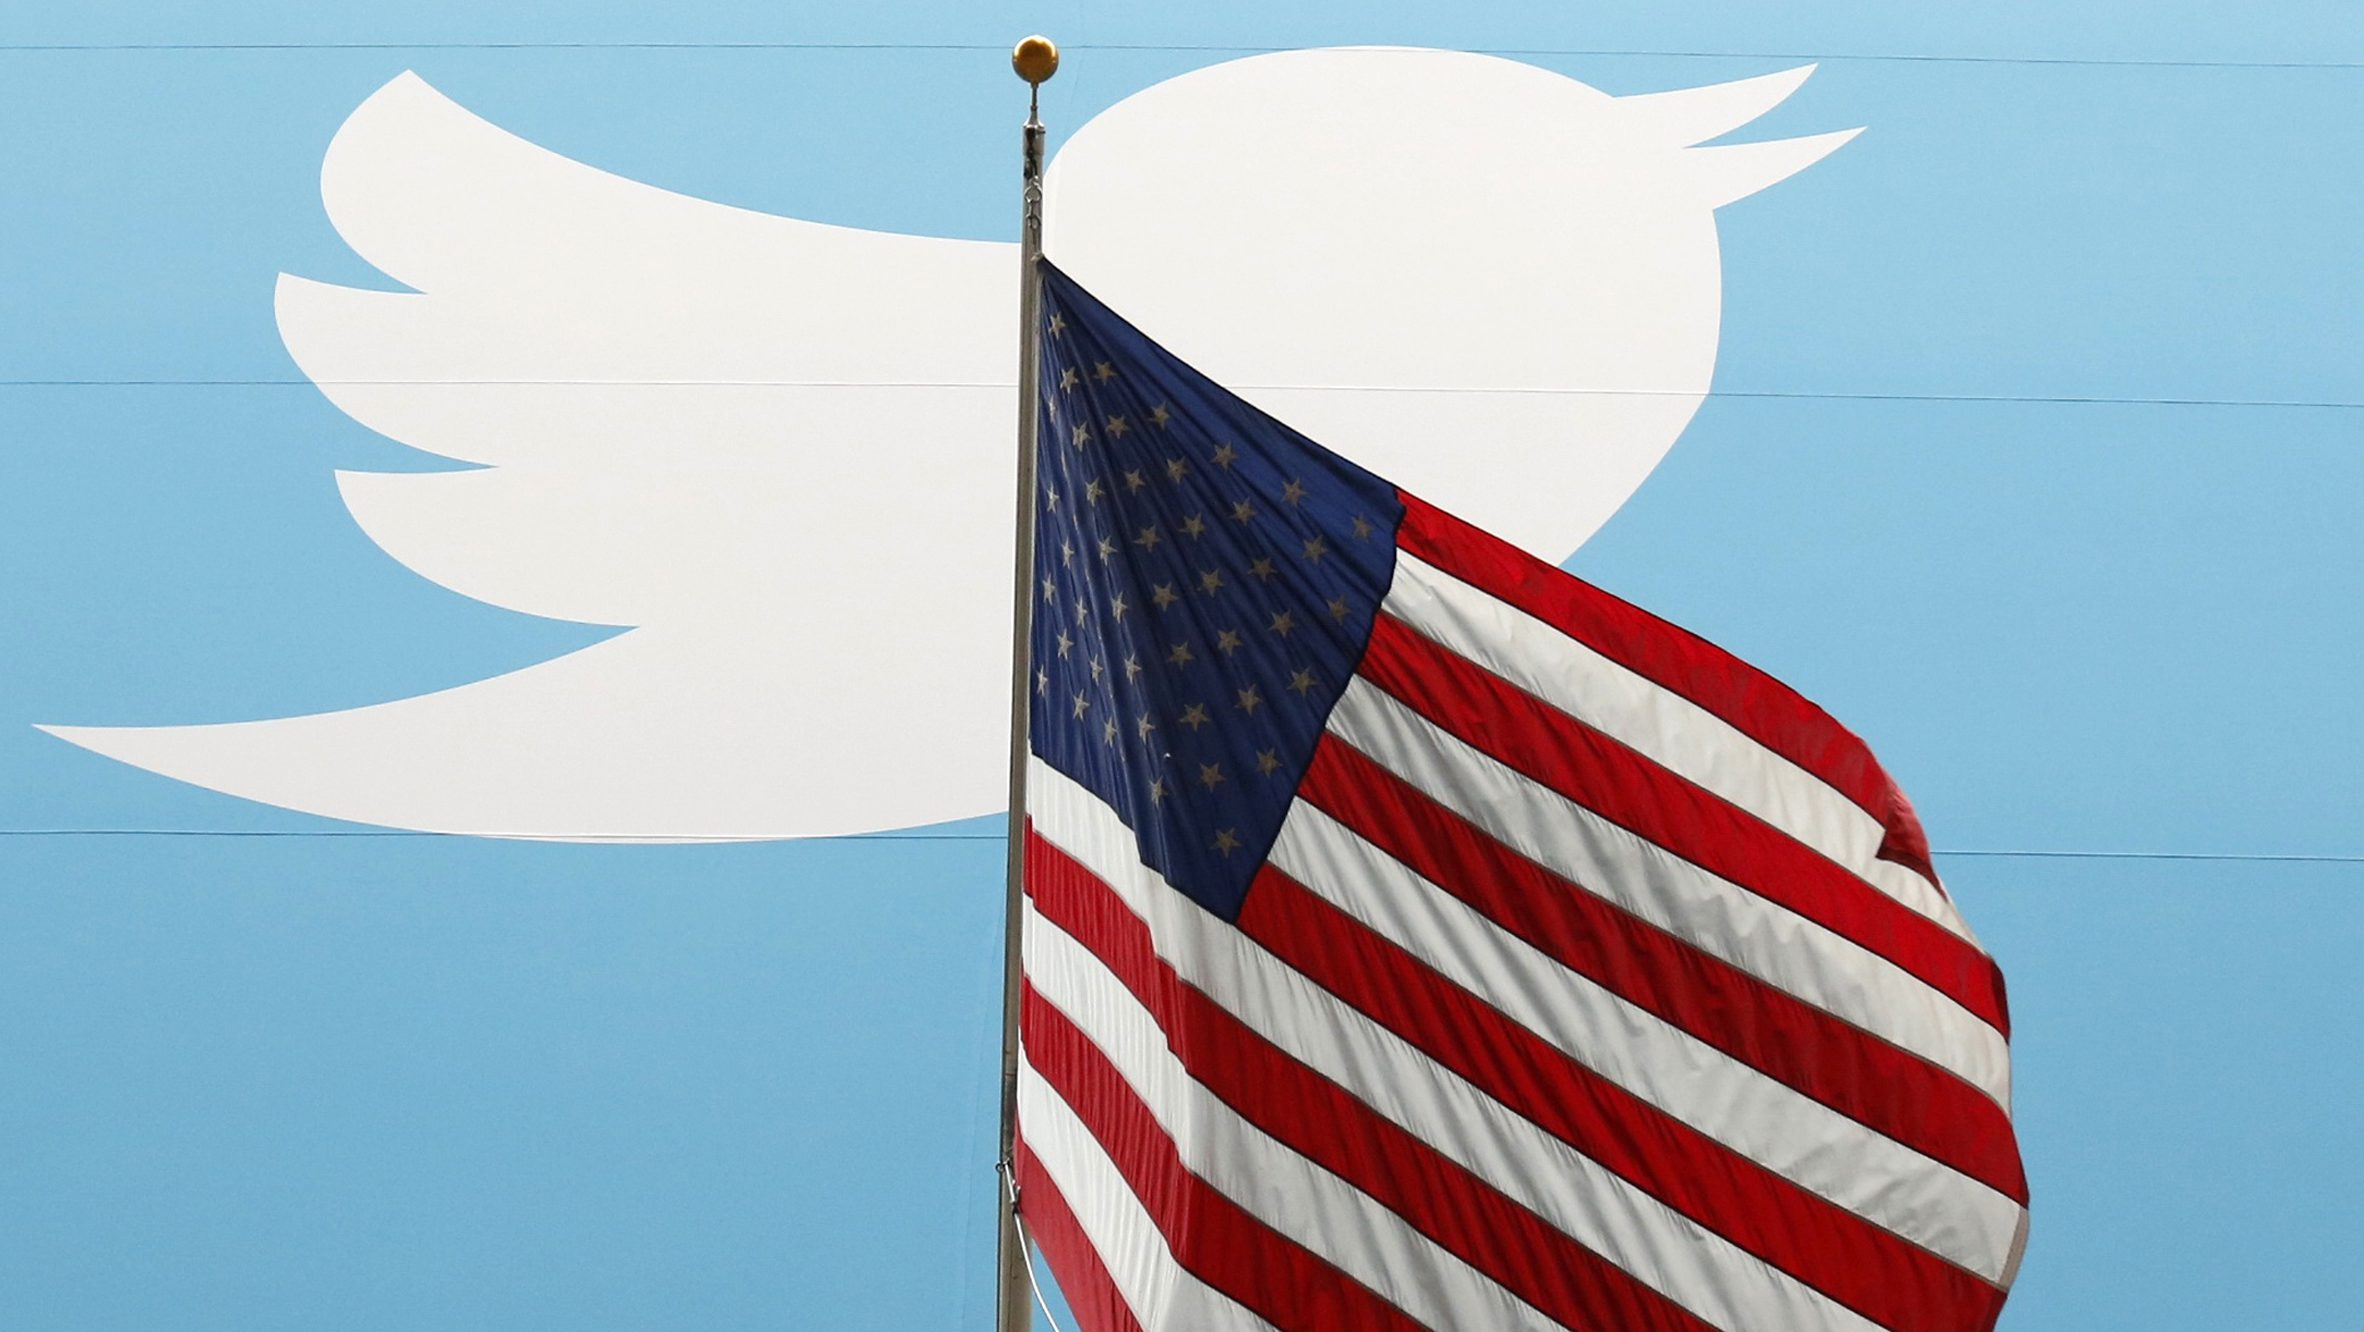 The Twitter Inc. logo is shown with the U.S. flag during the company's IPO on the floor of the New York Stock Exchange in New York, November 7, 2013.